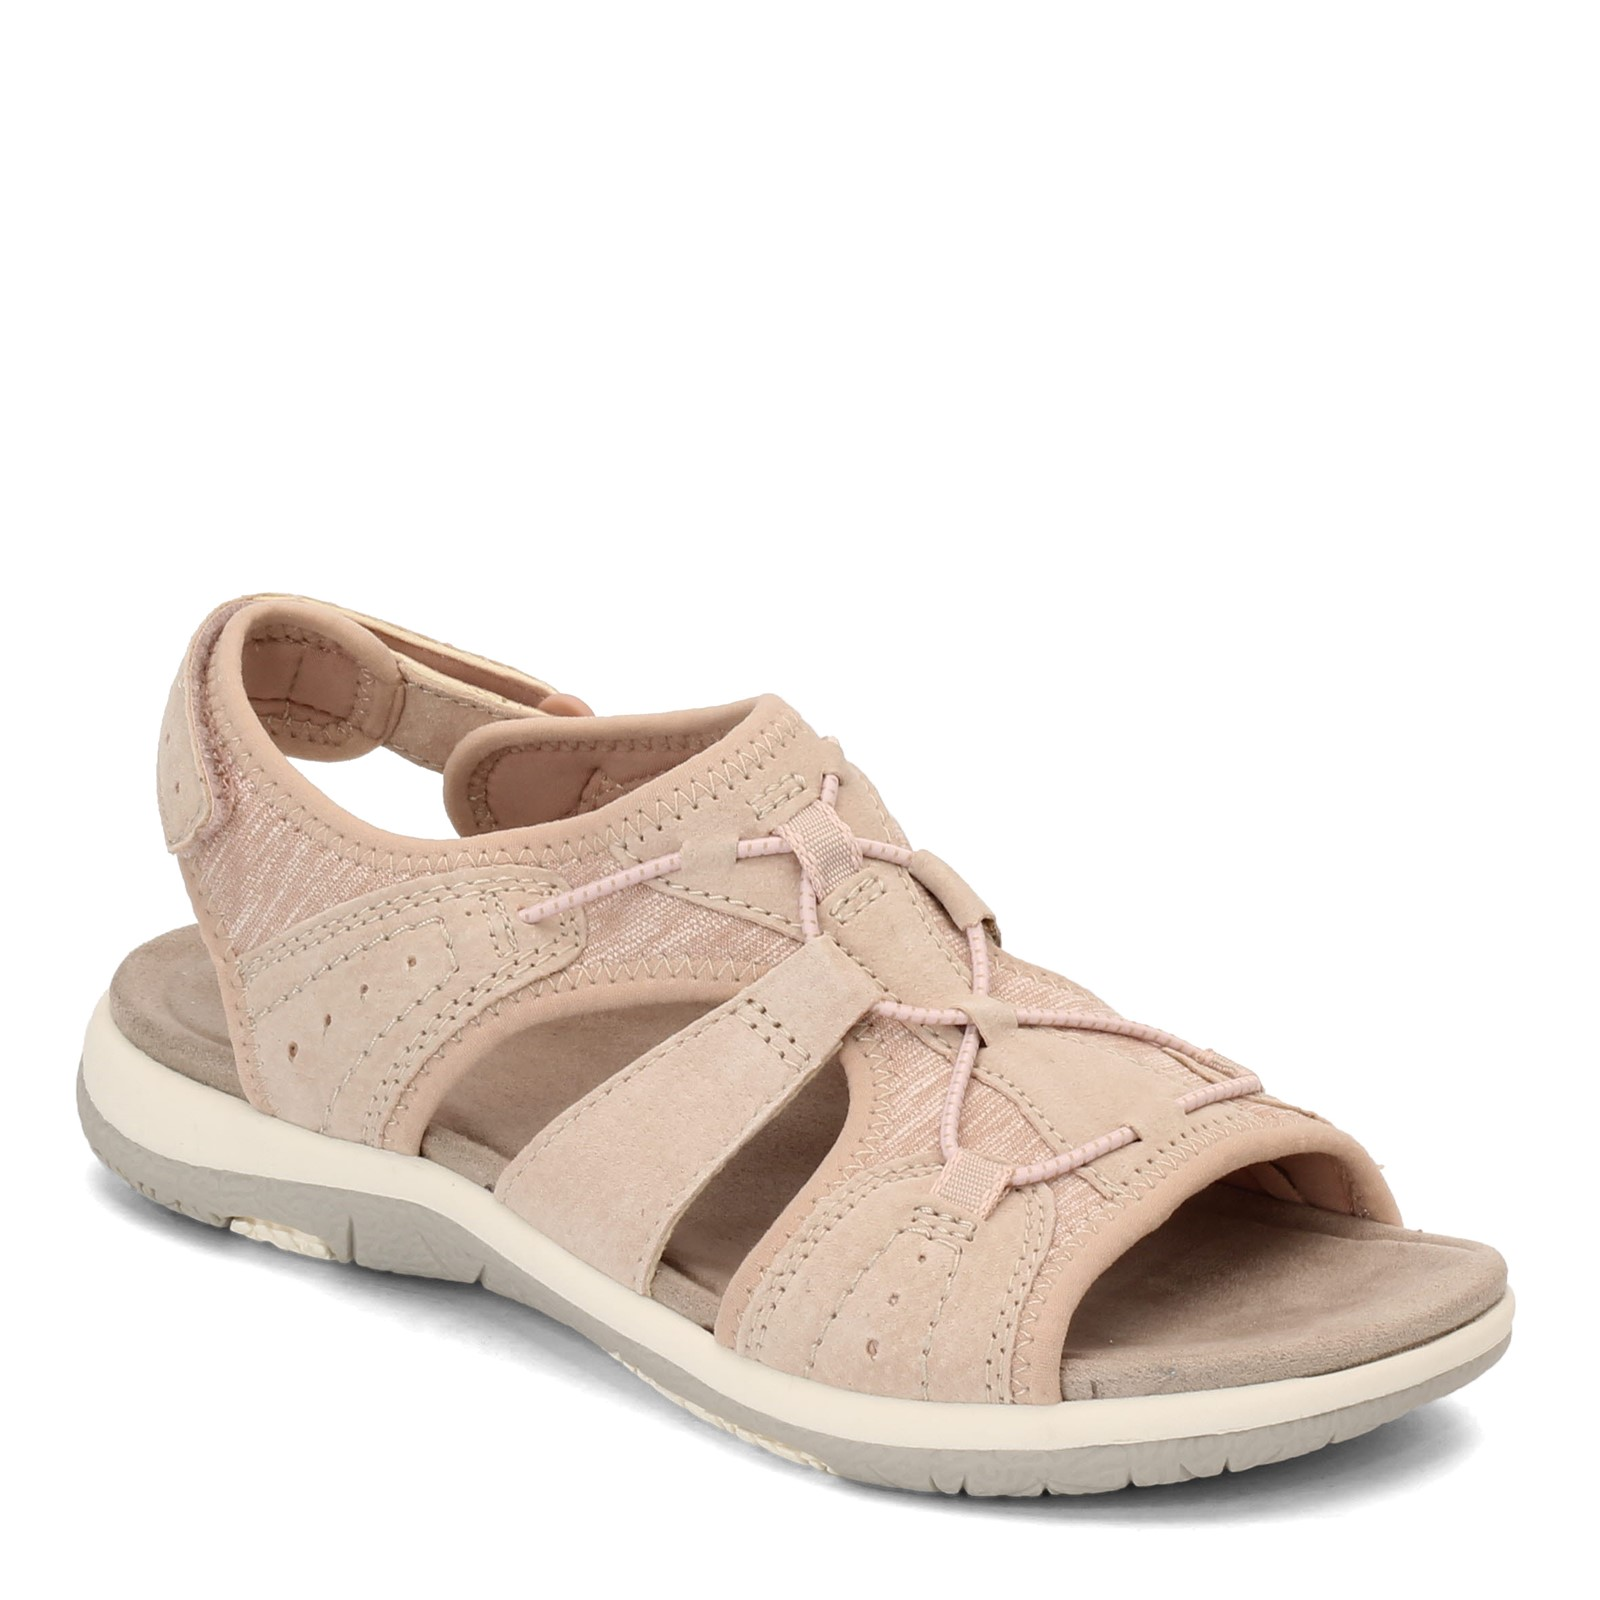 Women's Earth Origins, Savoy Siena Sandal